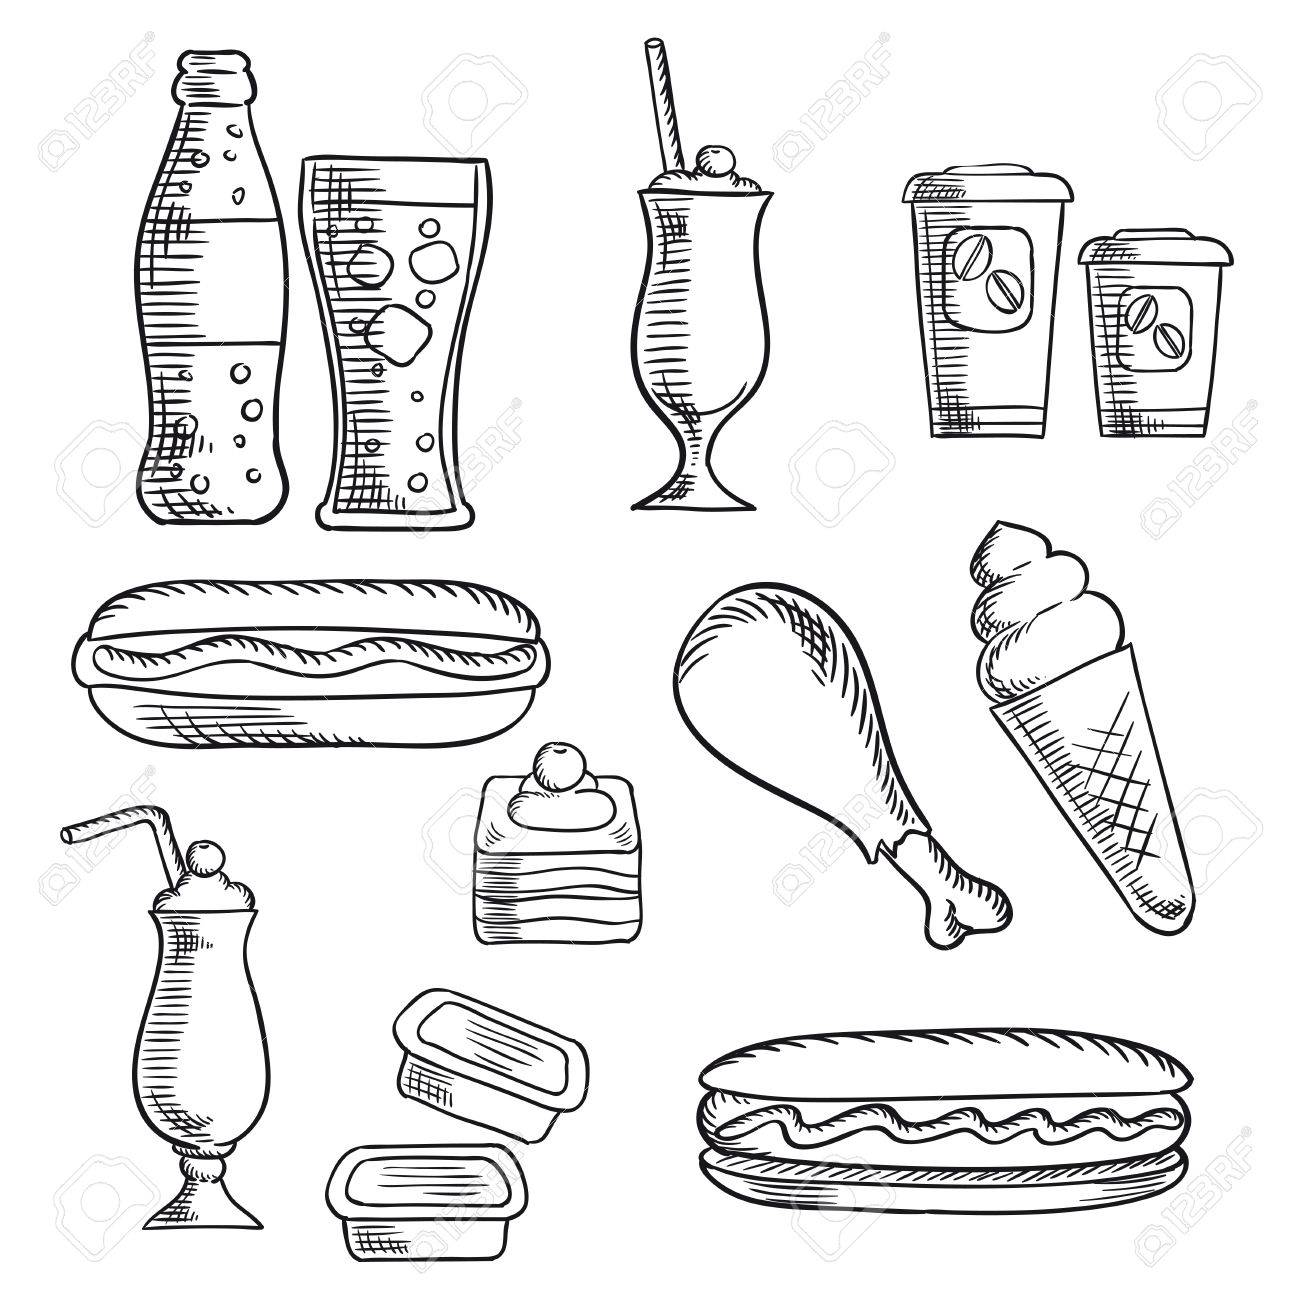 1300x1300 Fast Food Isolated Sketch Icons Of Hot Dogs, Soda, Chicken Leg